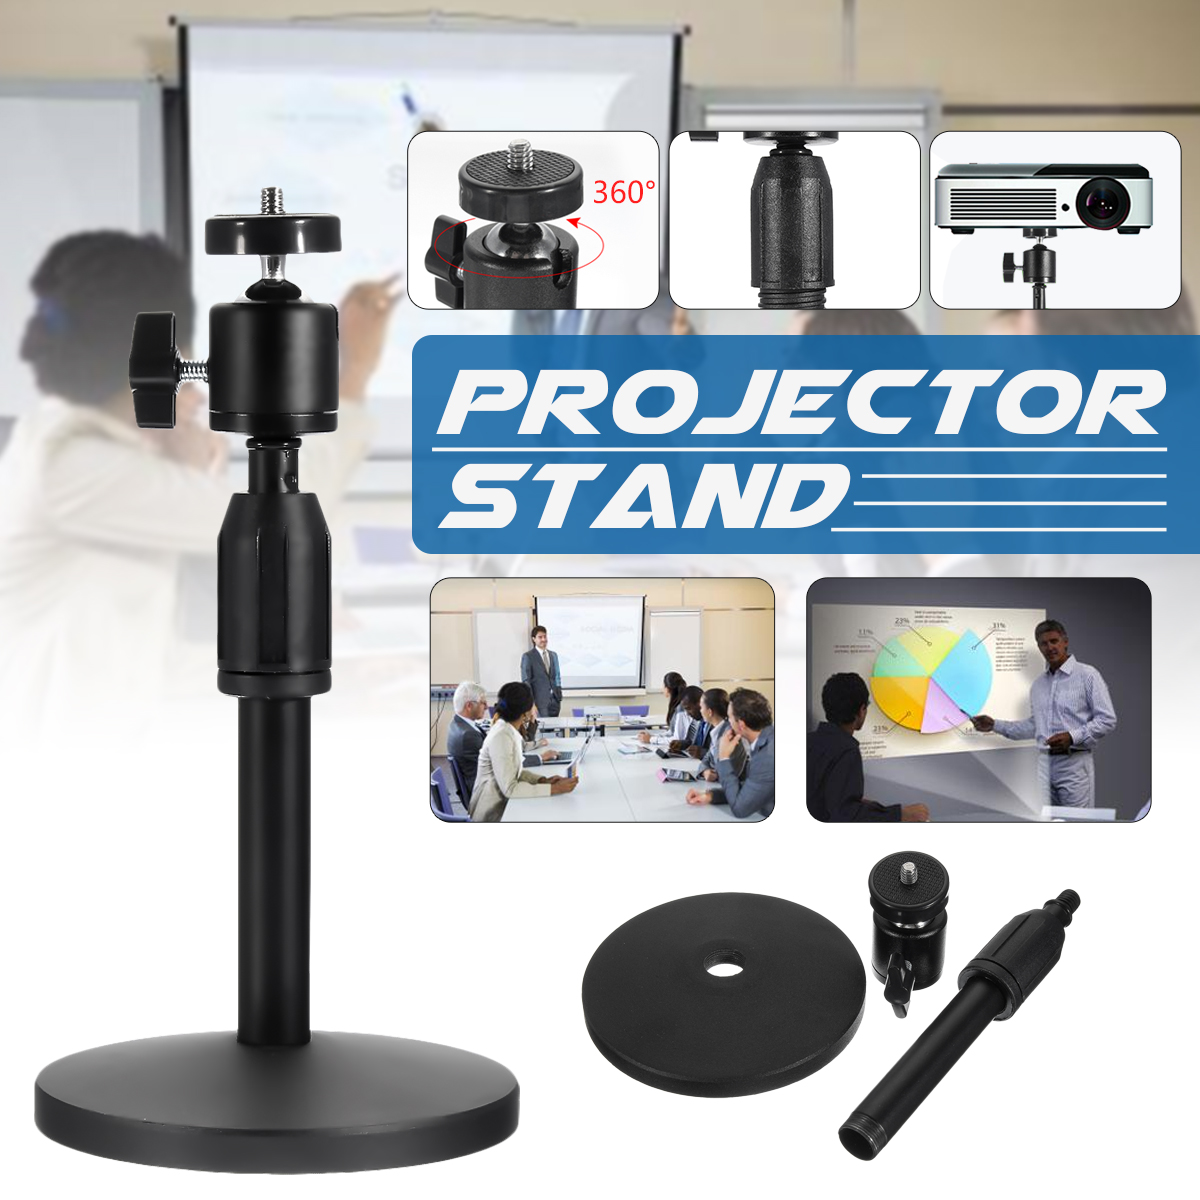 Universal Laptop & Projector Presentation Camera Stand— Multifunction Stand with Adjustable Height 21-30cm